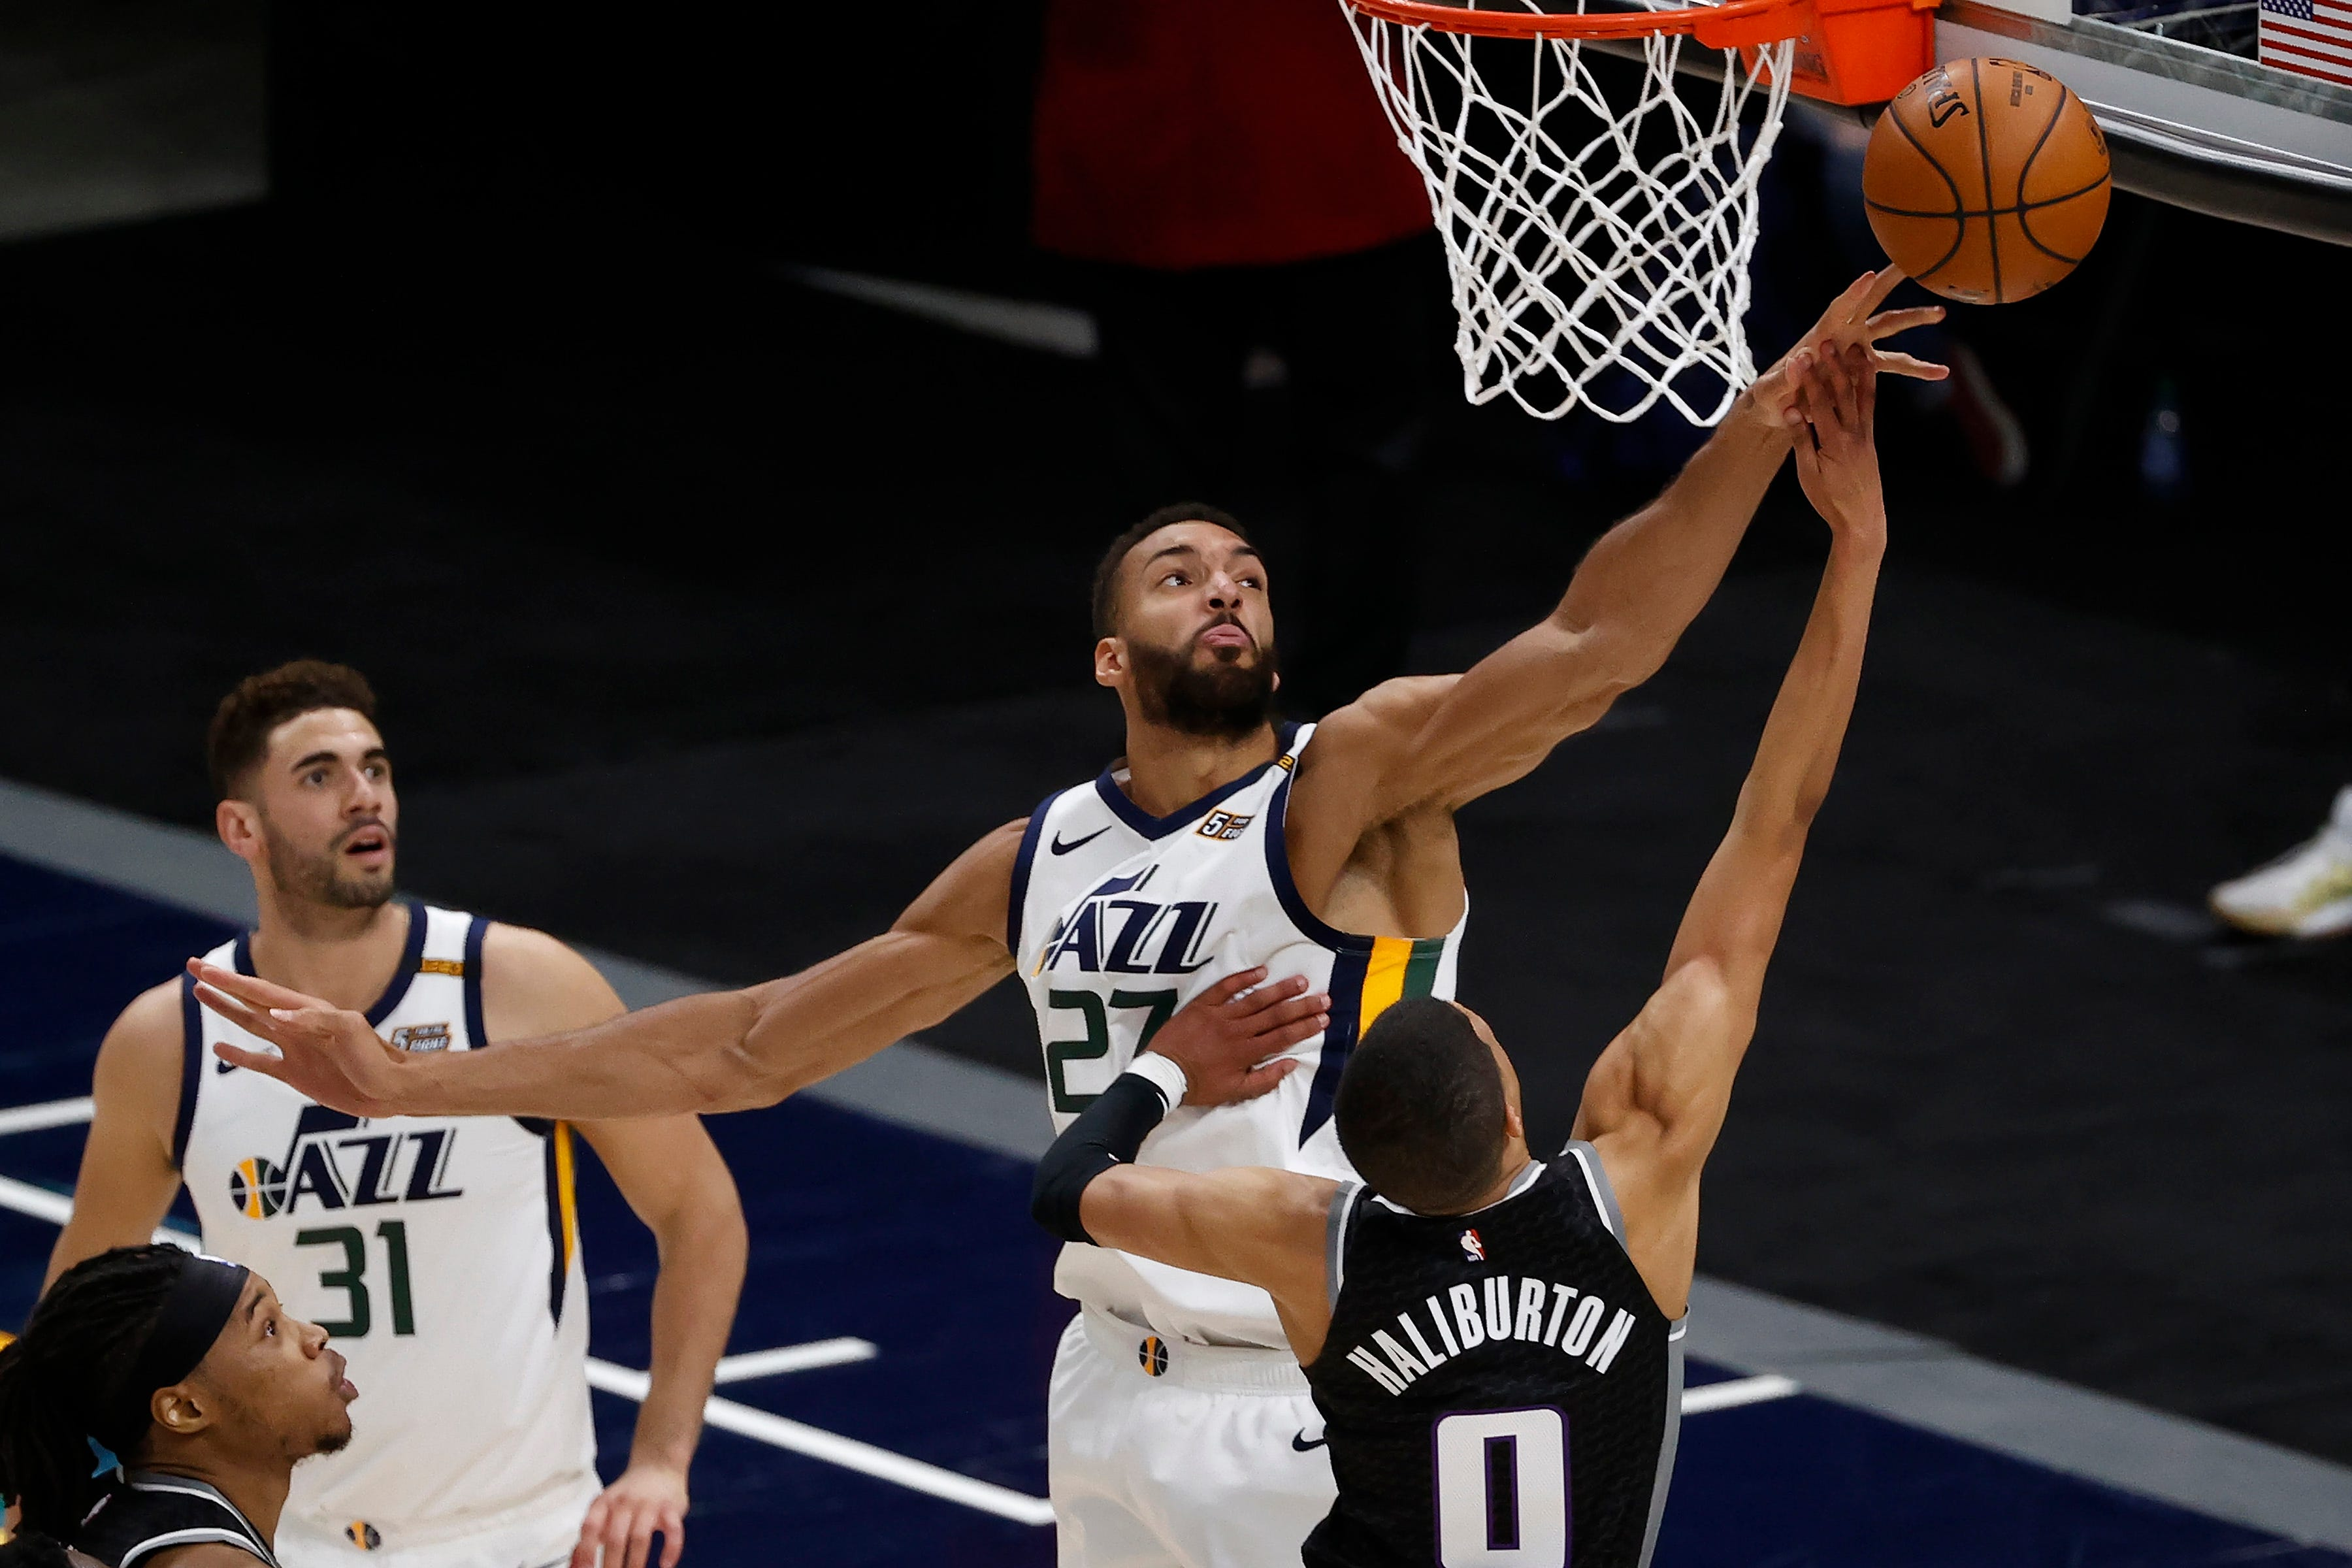 Utah Jazz center Rudy Gobert wins NBA Defensive Player of the Year for third time